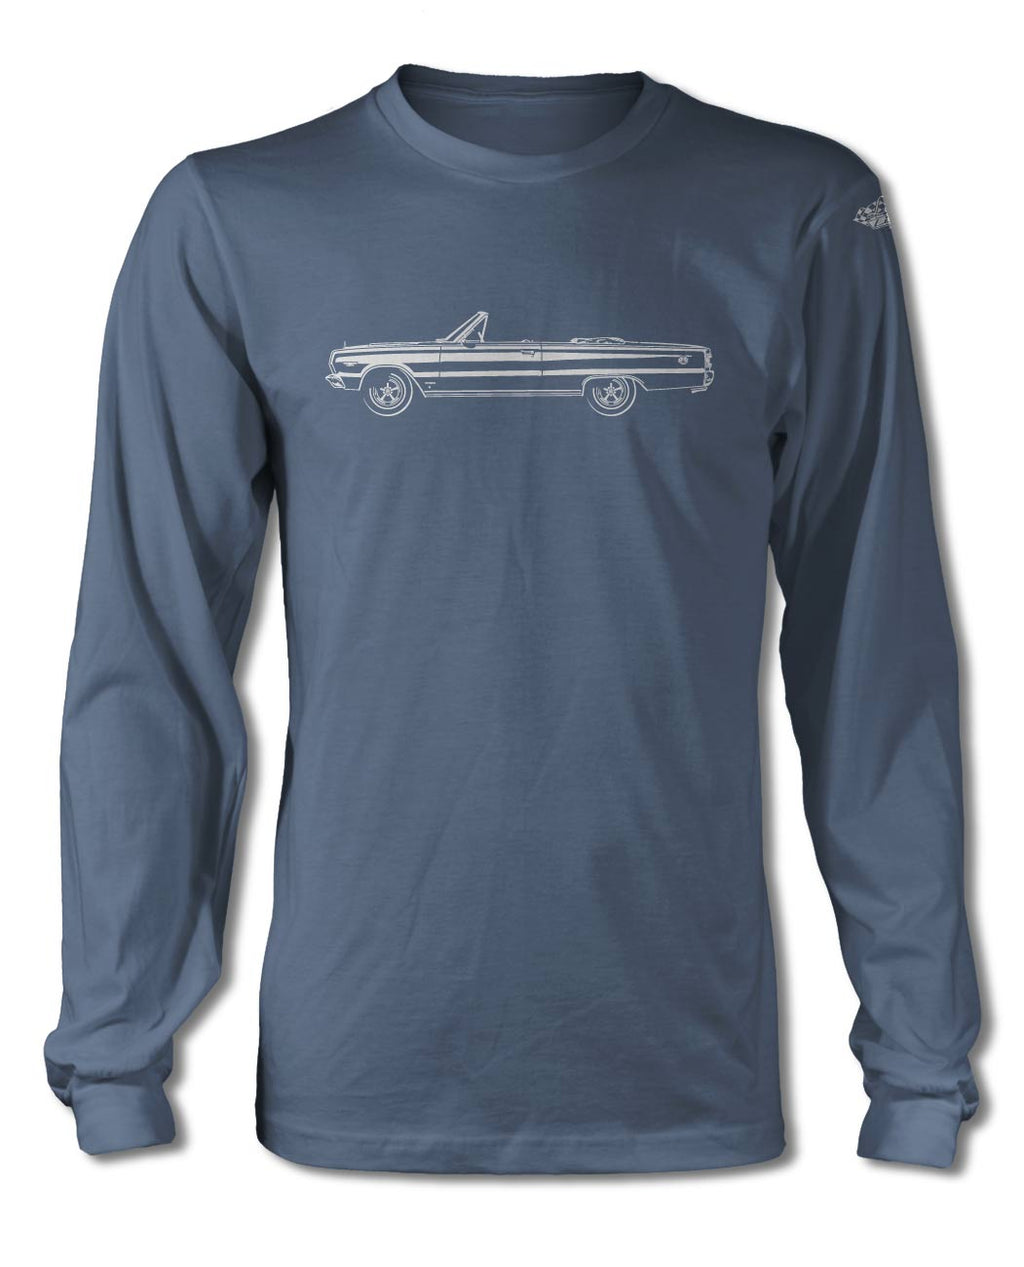 1967 Plymouth GTX Convertible T-Shirt - Long Sleeves - Side View